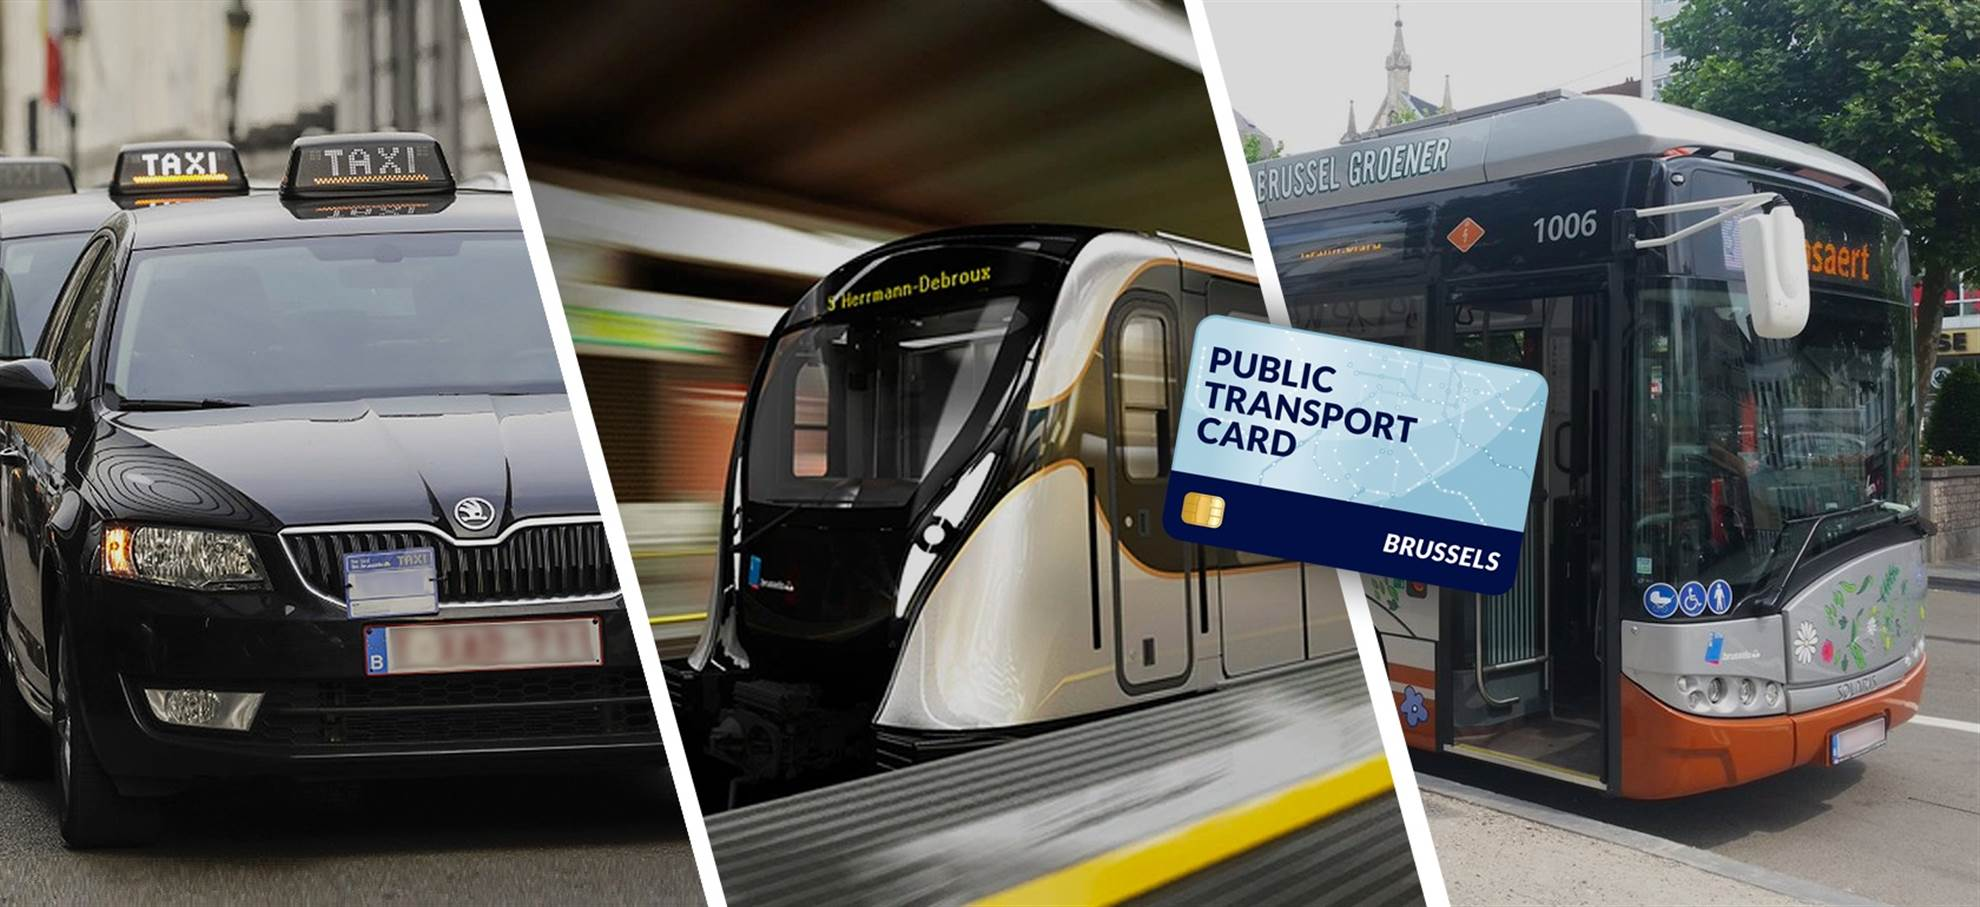 Bruxelles Travel Card